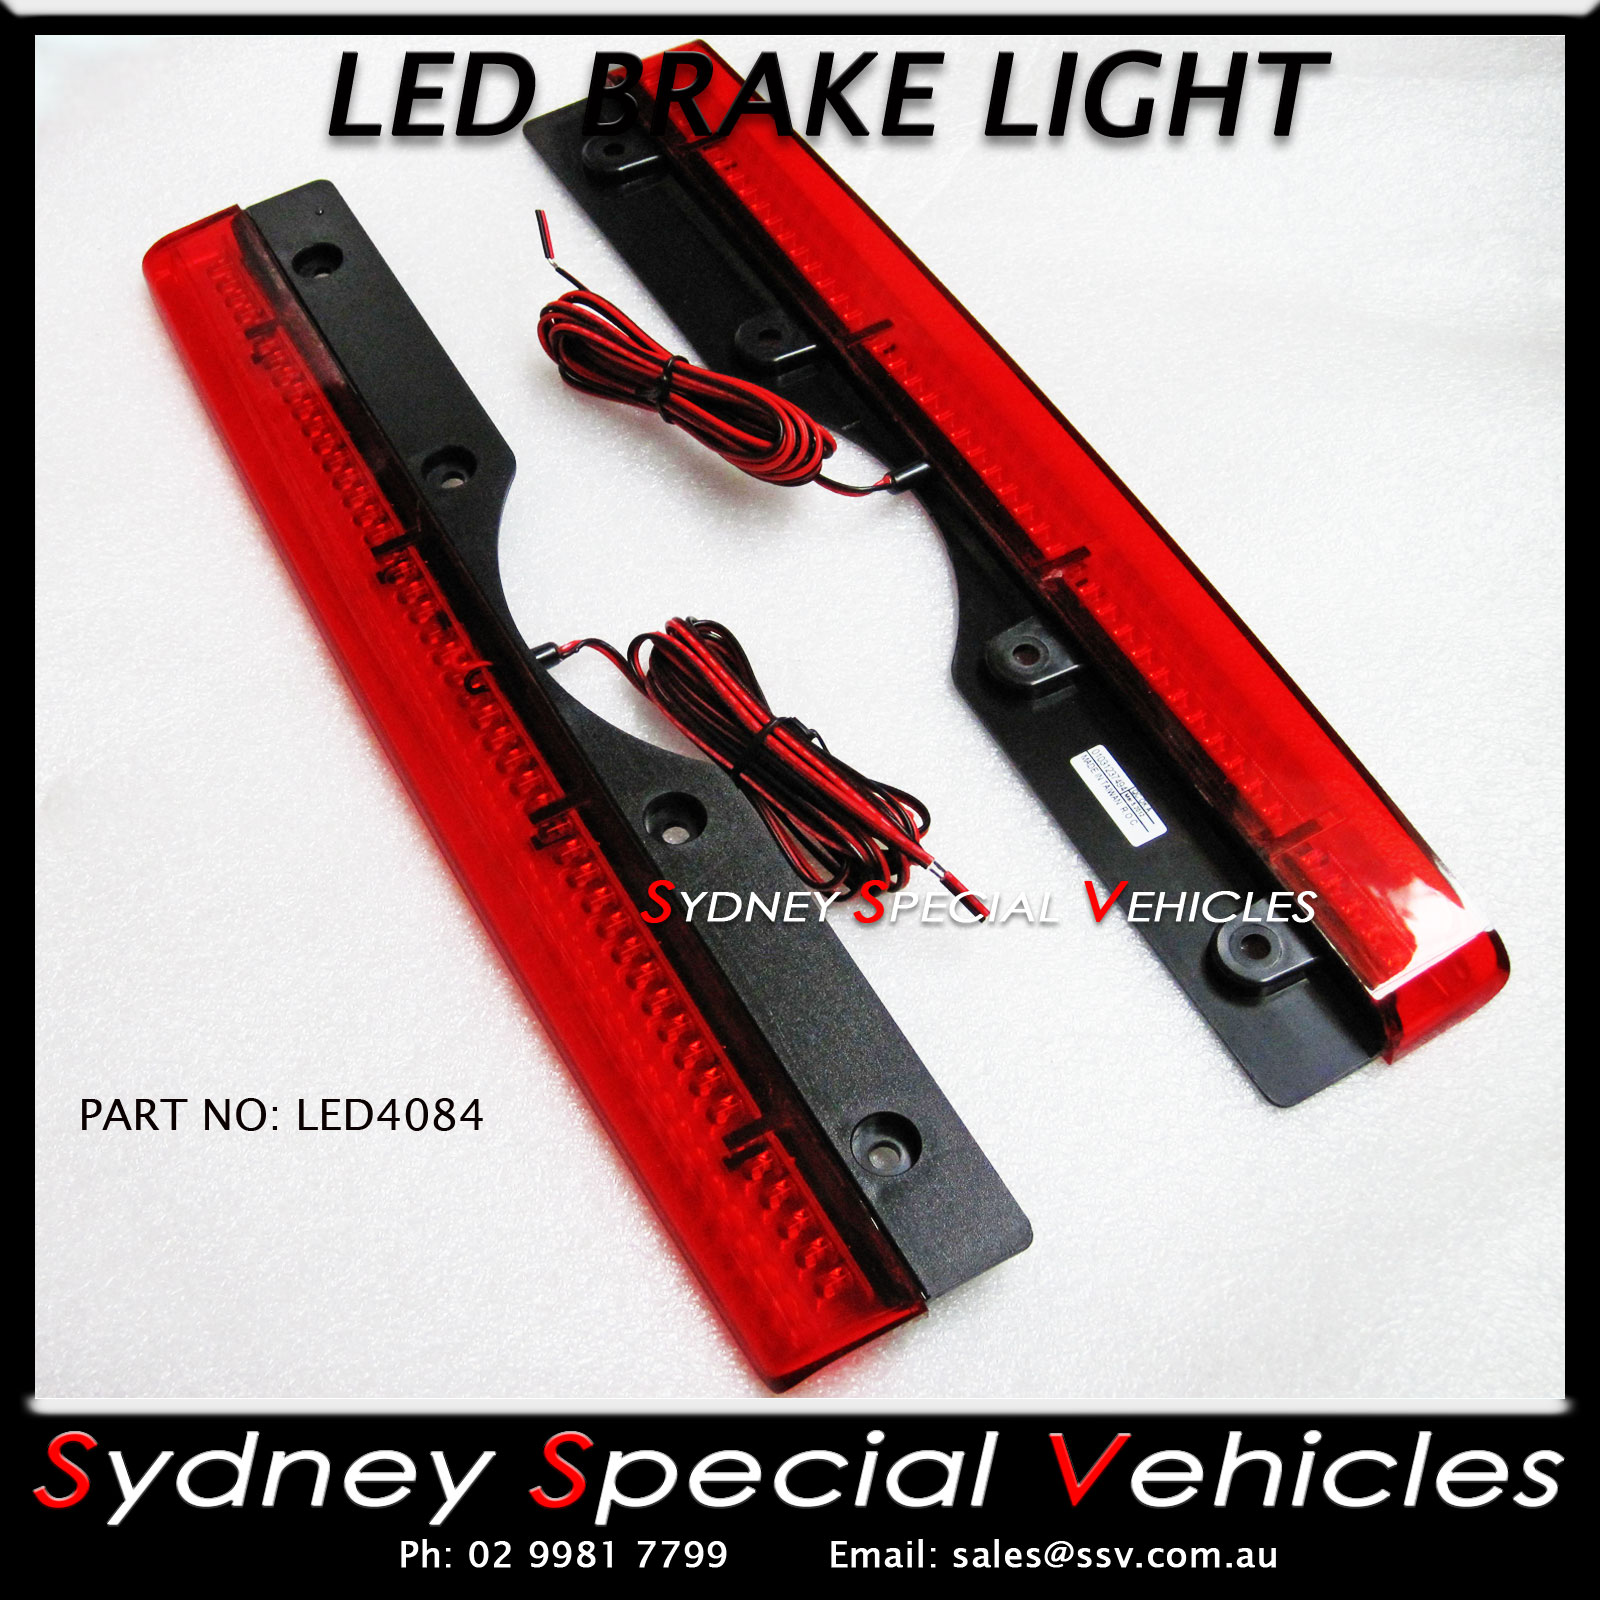 REPLACEMENT-LED-BRAKE-LIGHT-FOR-REAR-WING-SPOILER-408-mm